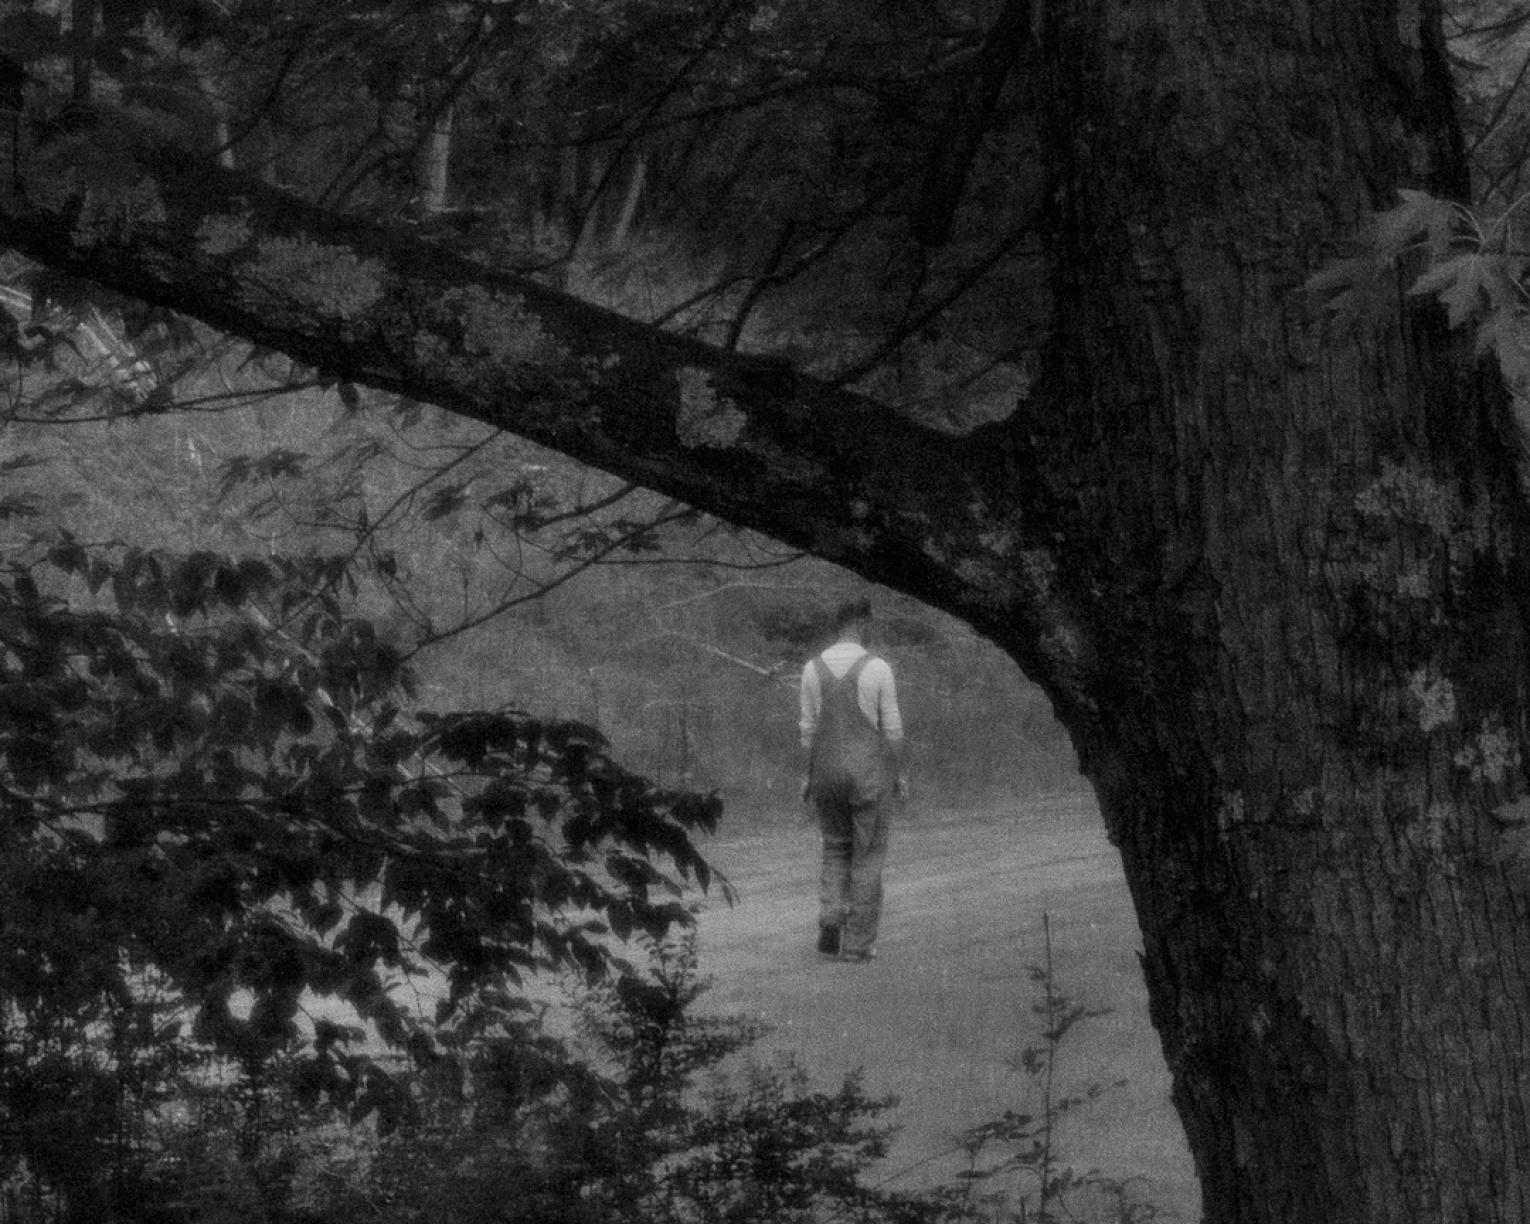 Black and white photo of man in overalls walking down dirt road